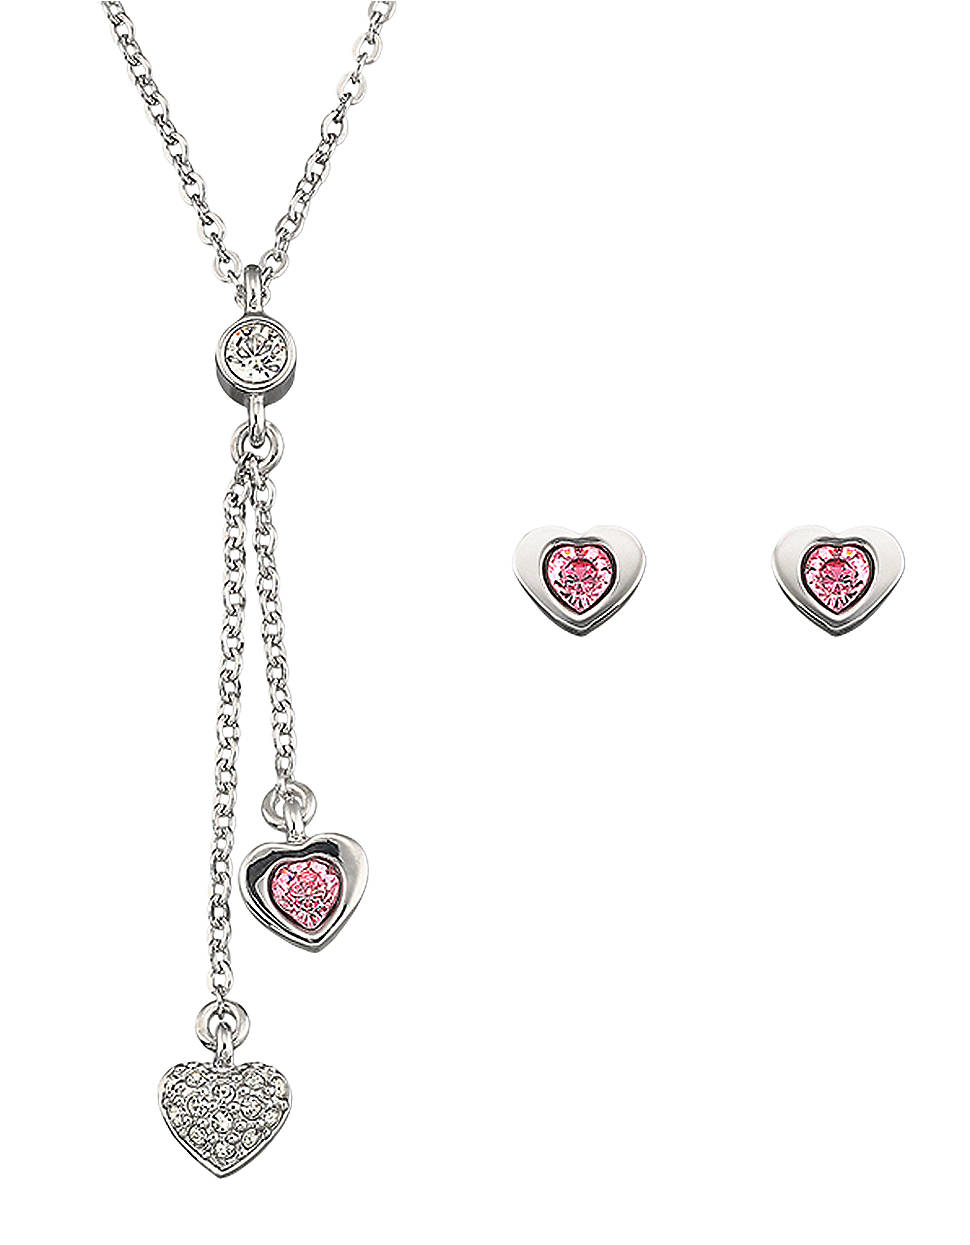 Gallery Previously Sold At Lord Taylor Women S Swarovski Crystal Necklace